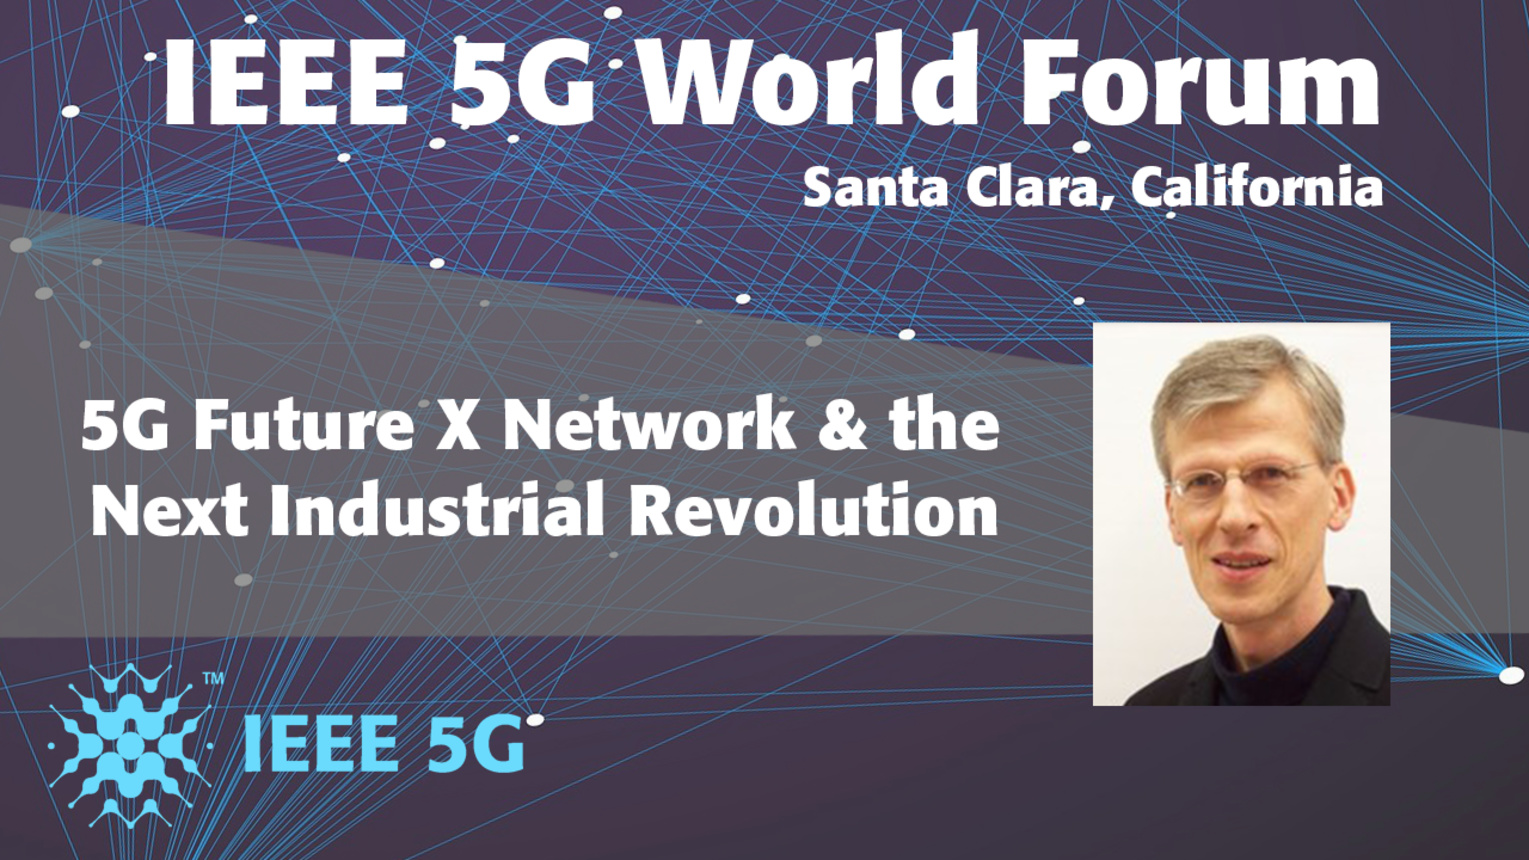 5G Future X Network & the Next Industrial Revolution - Peter Vetter - 5G World Forum Santa Clara 2018